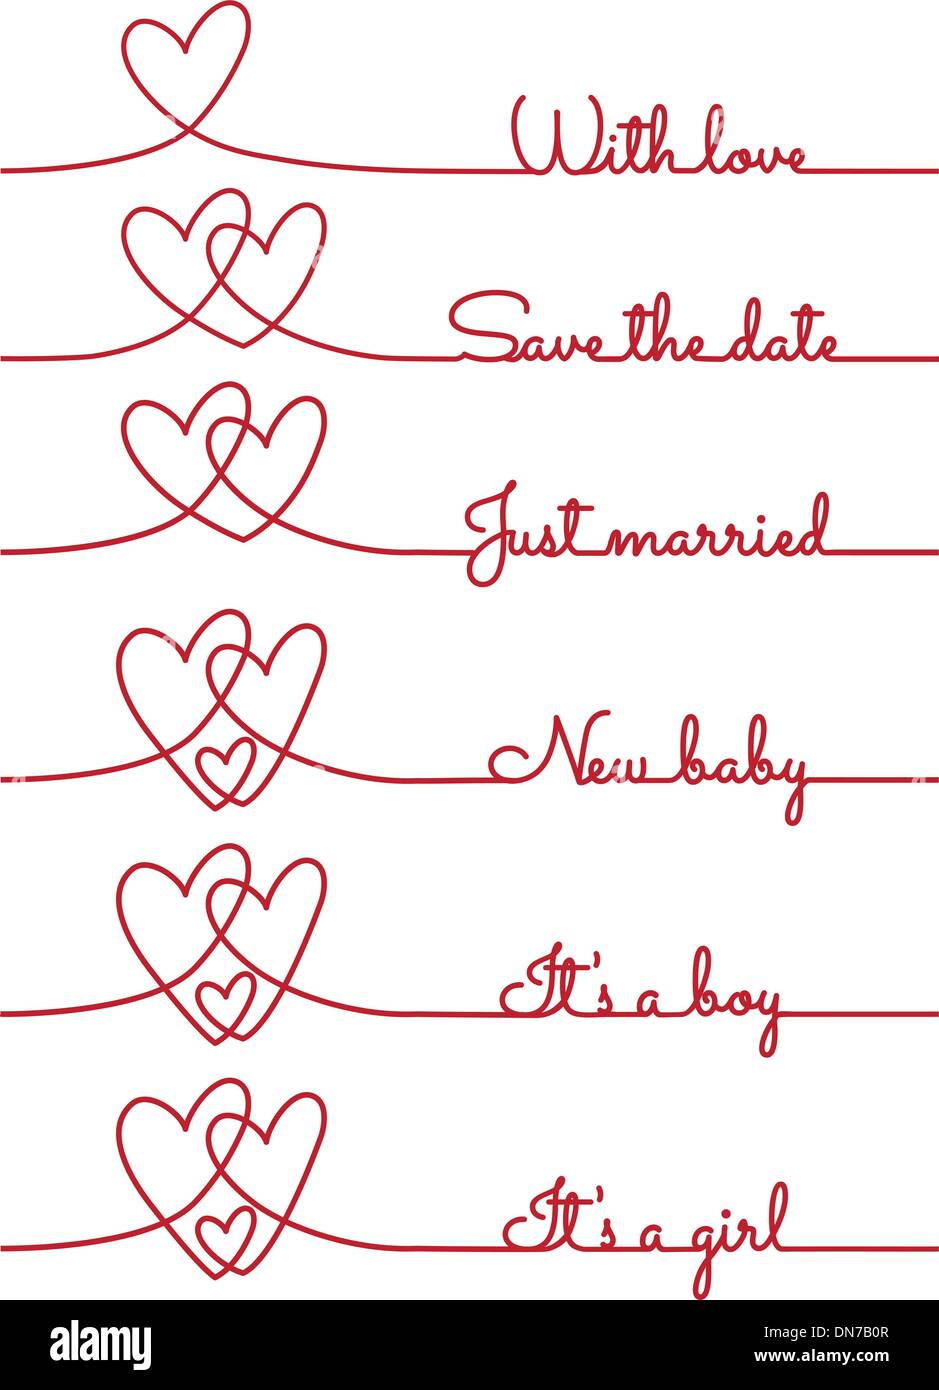 heart line drawing with text for cards, vector - Stock Image